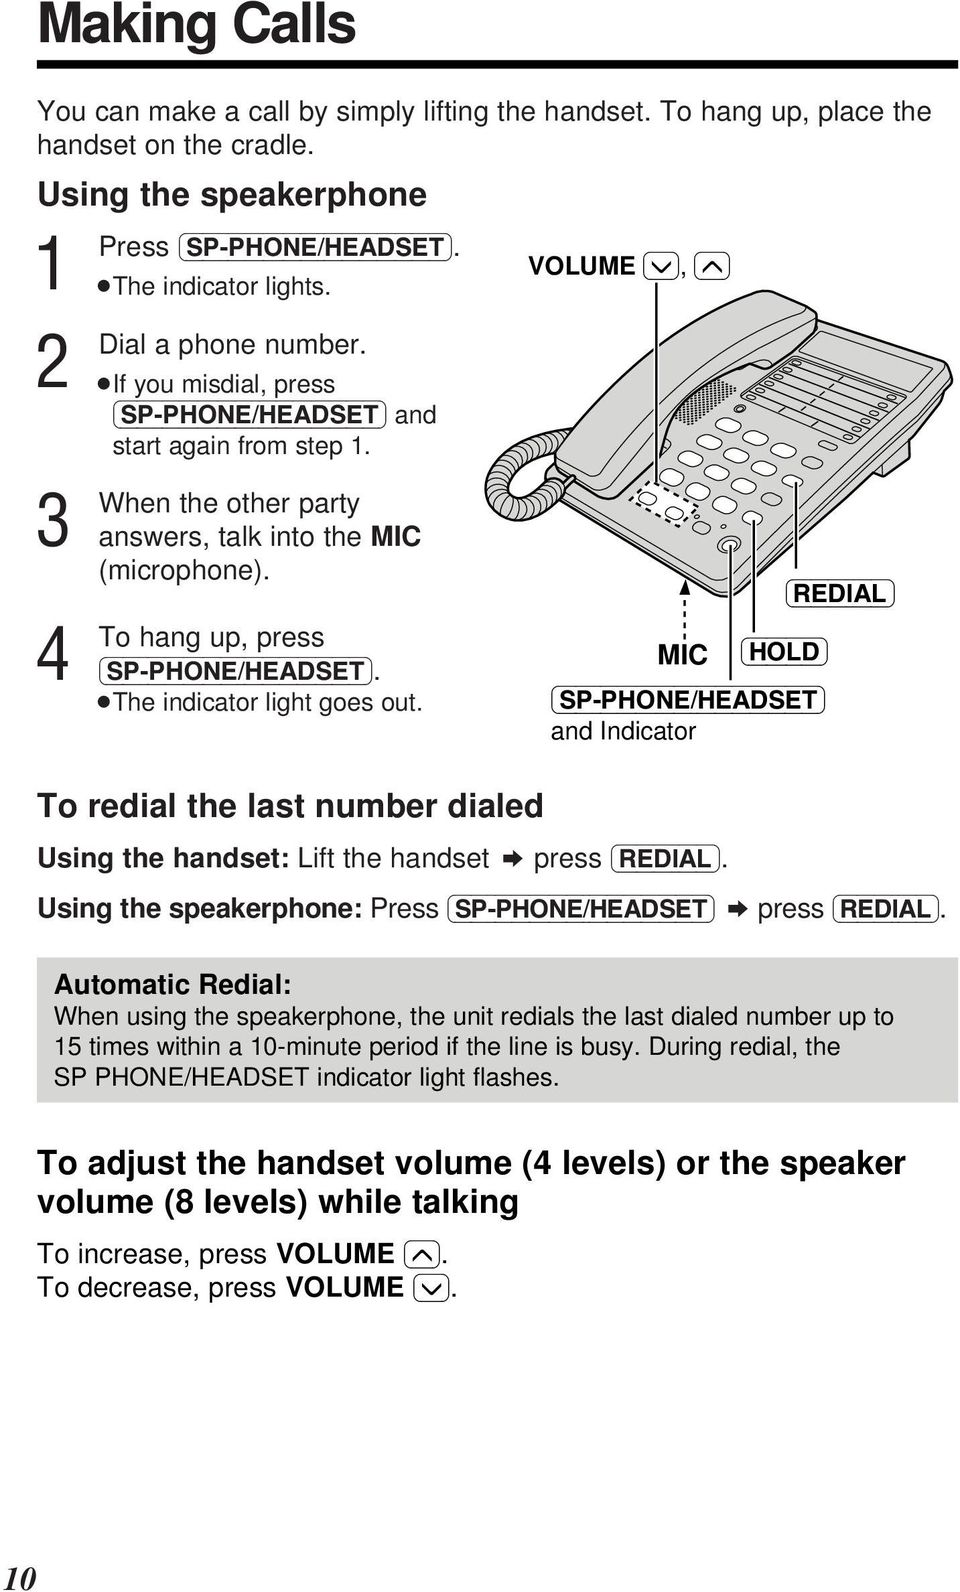 The indicator light goes out. To redial the last number dialed VOLUME (_), (^) MIC (HOLD) (SP-PHONE/HEADSET) and Indicator (REDIAL) Using the handset: Lift the handset press (REDIAL).